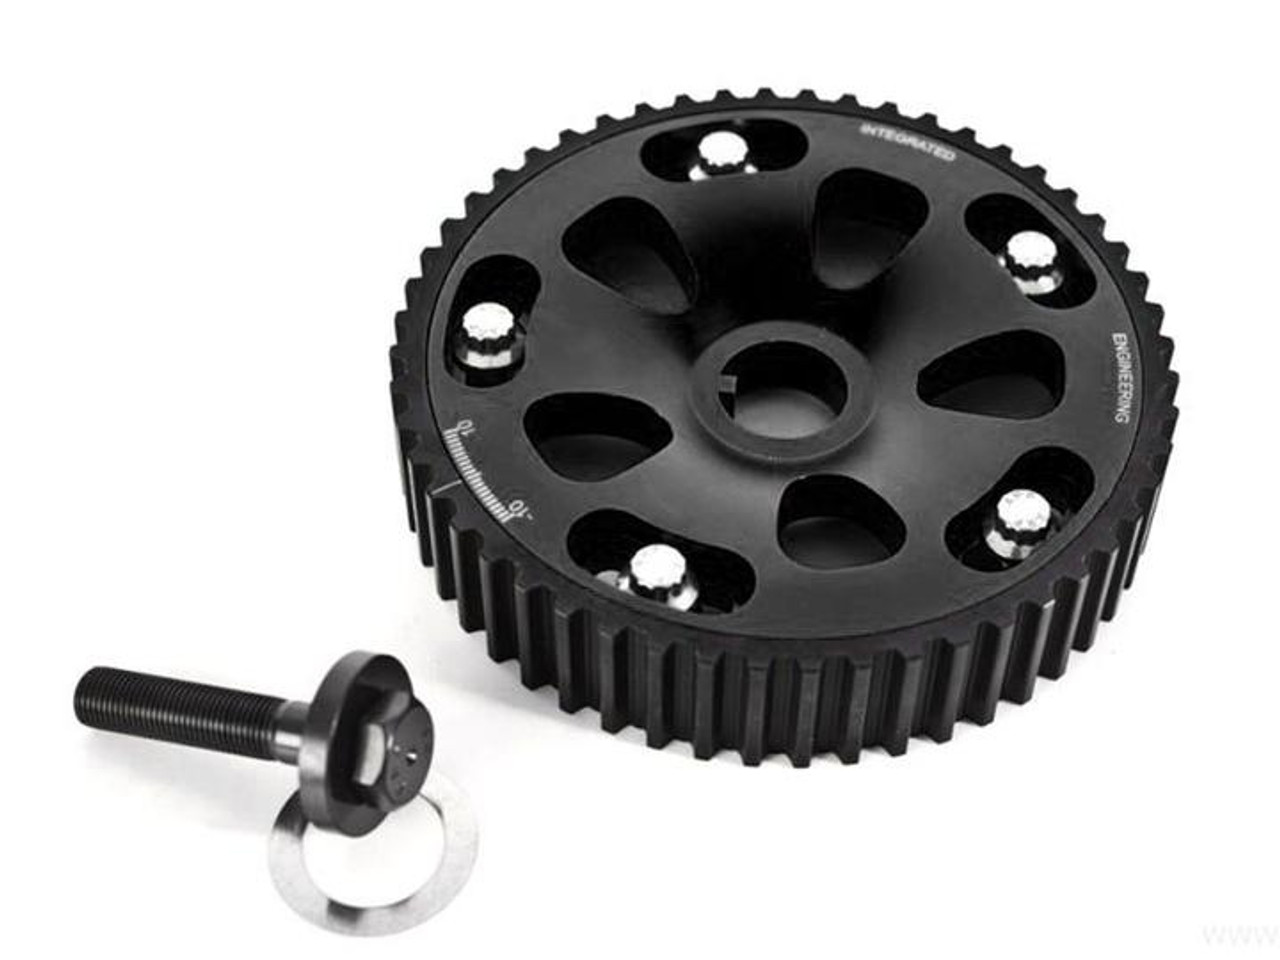 IE Adjustable Cam Gear For 1.8T 20V Engines   Fits VW & Audi MK4, B5, B6, 8N, 8L Chassis